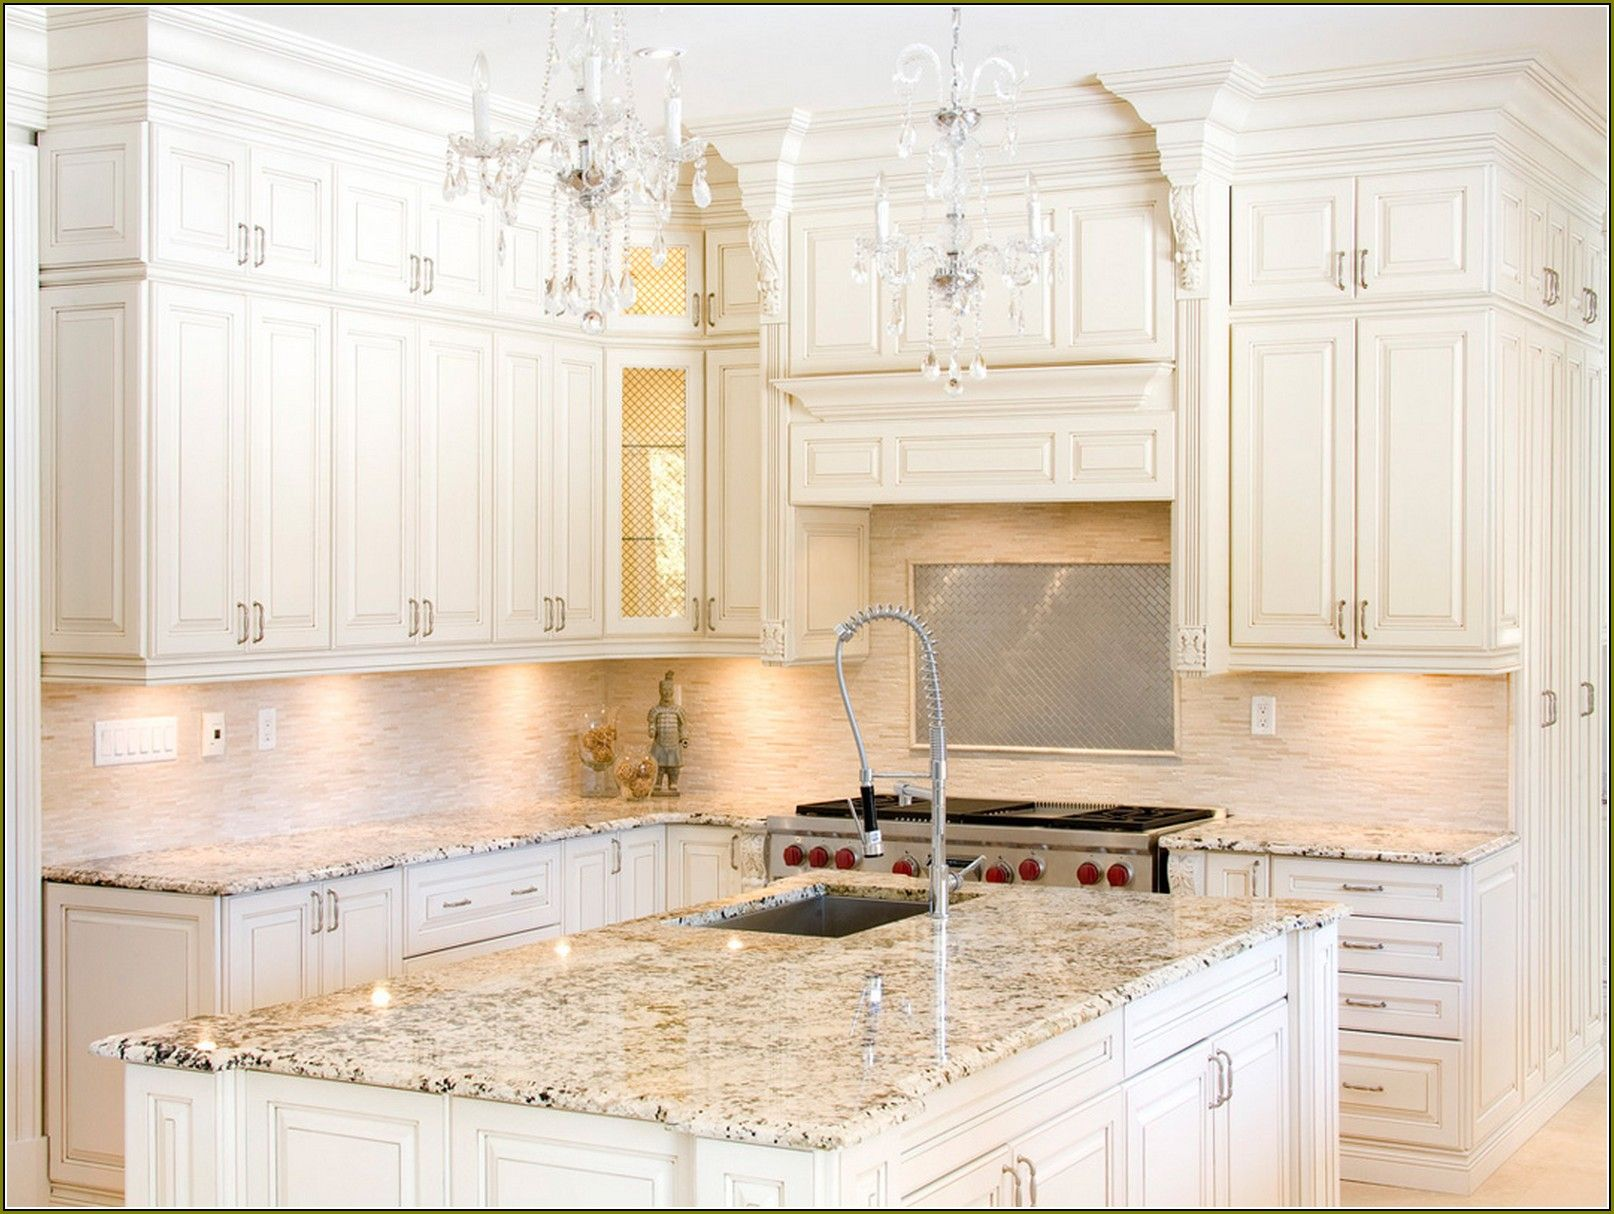 Off White Kitchen Cabinets With Granite Countertops Kitchen Cabinets And Granite Antique White Kitchen Beige Kitchen